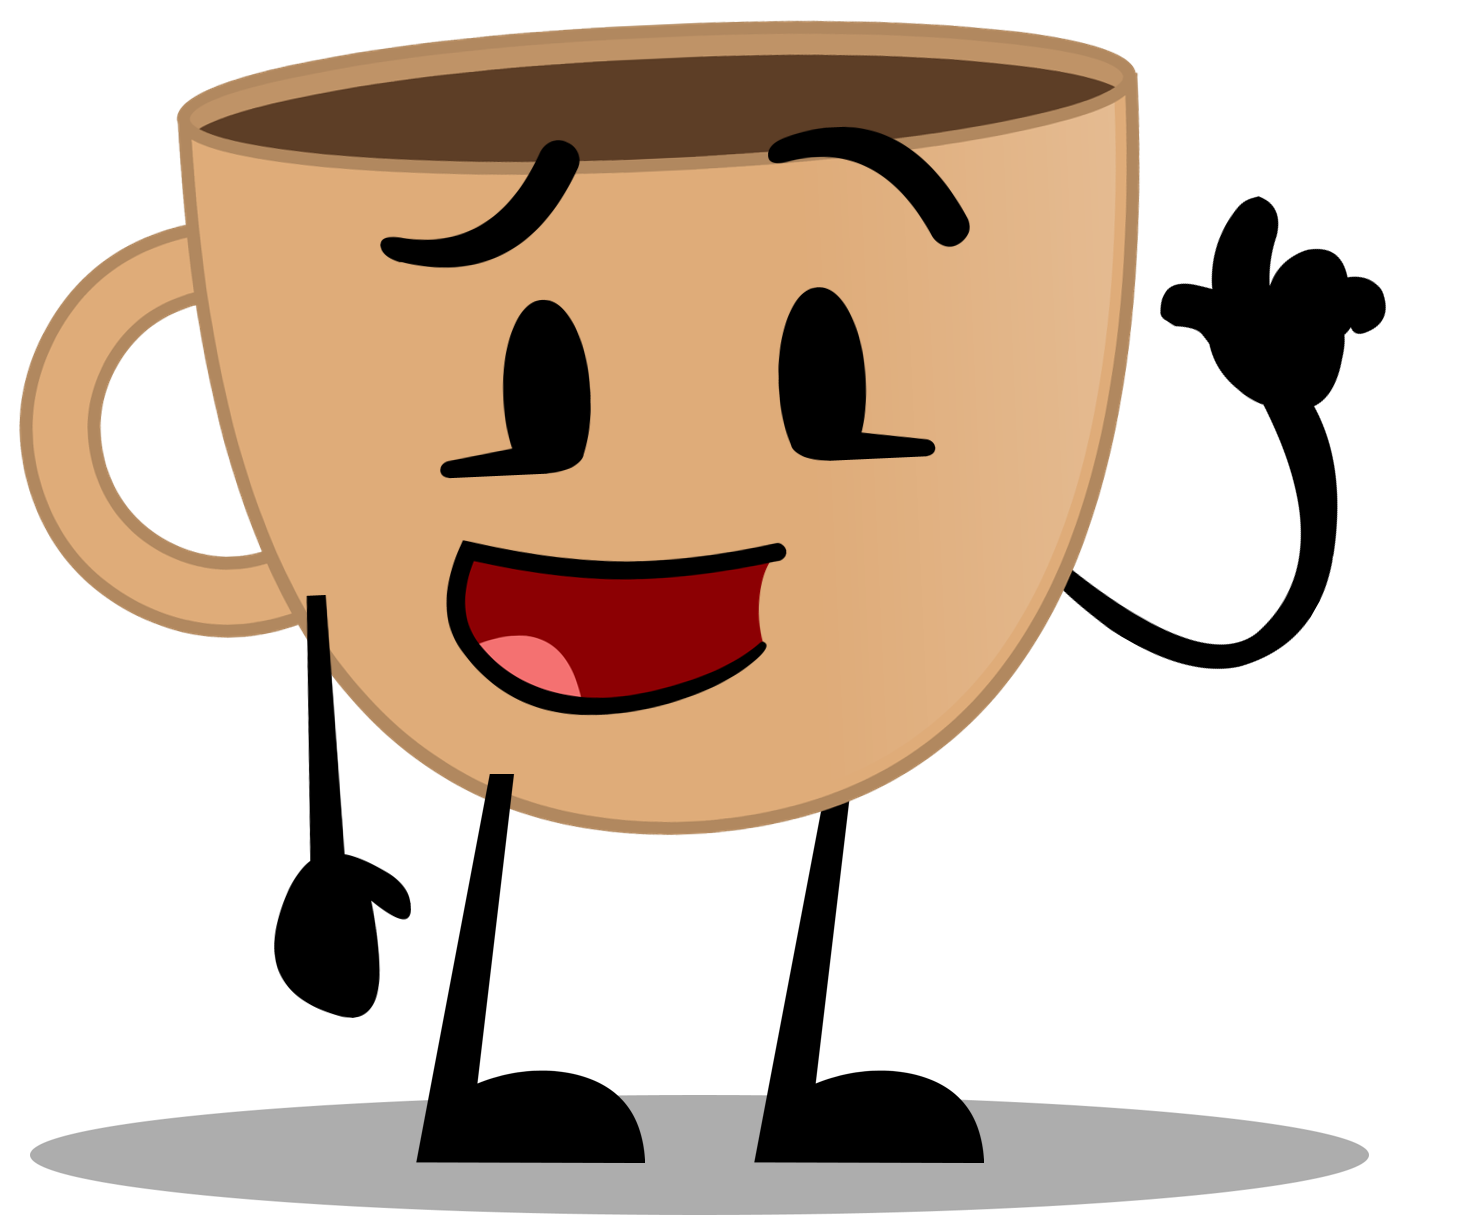 Cups clipart many object. Image coffee cup new